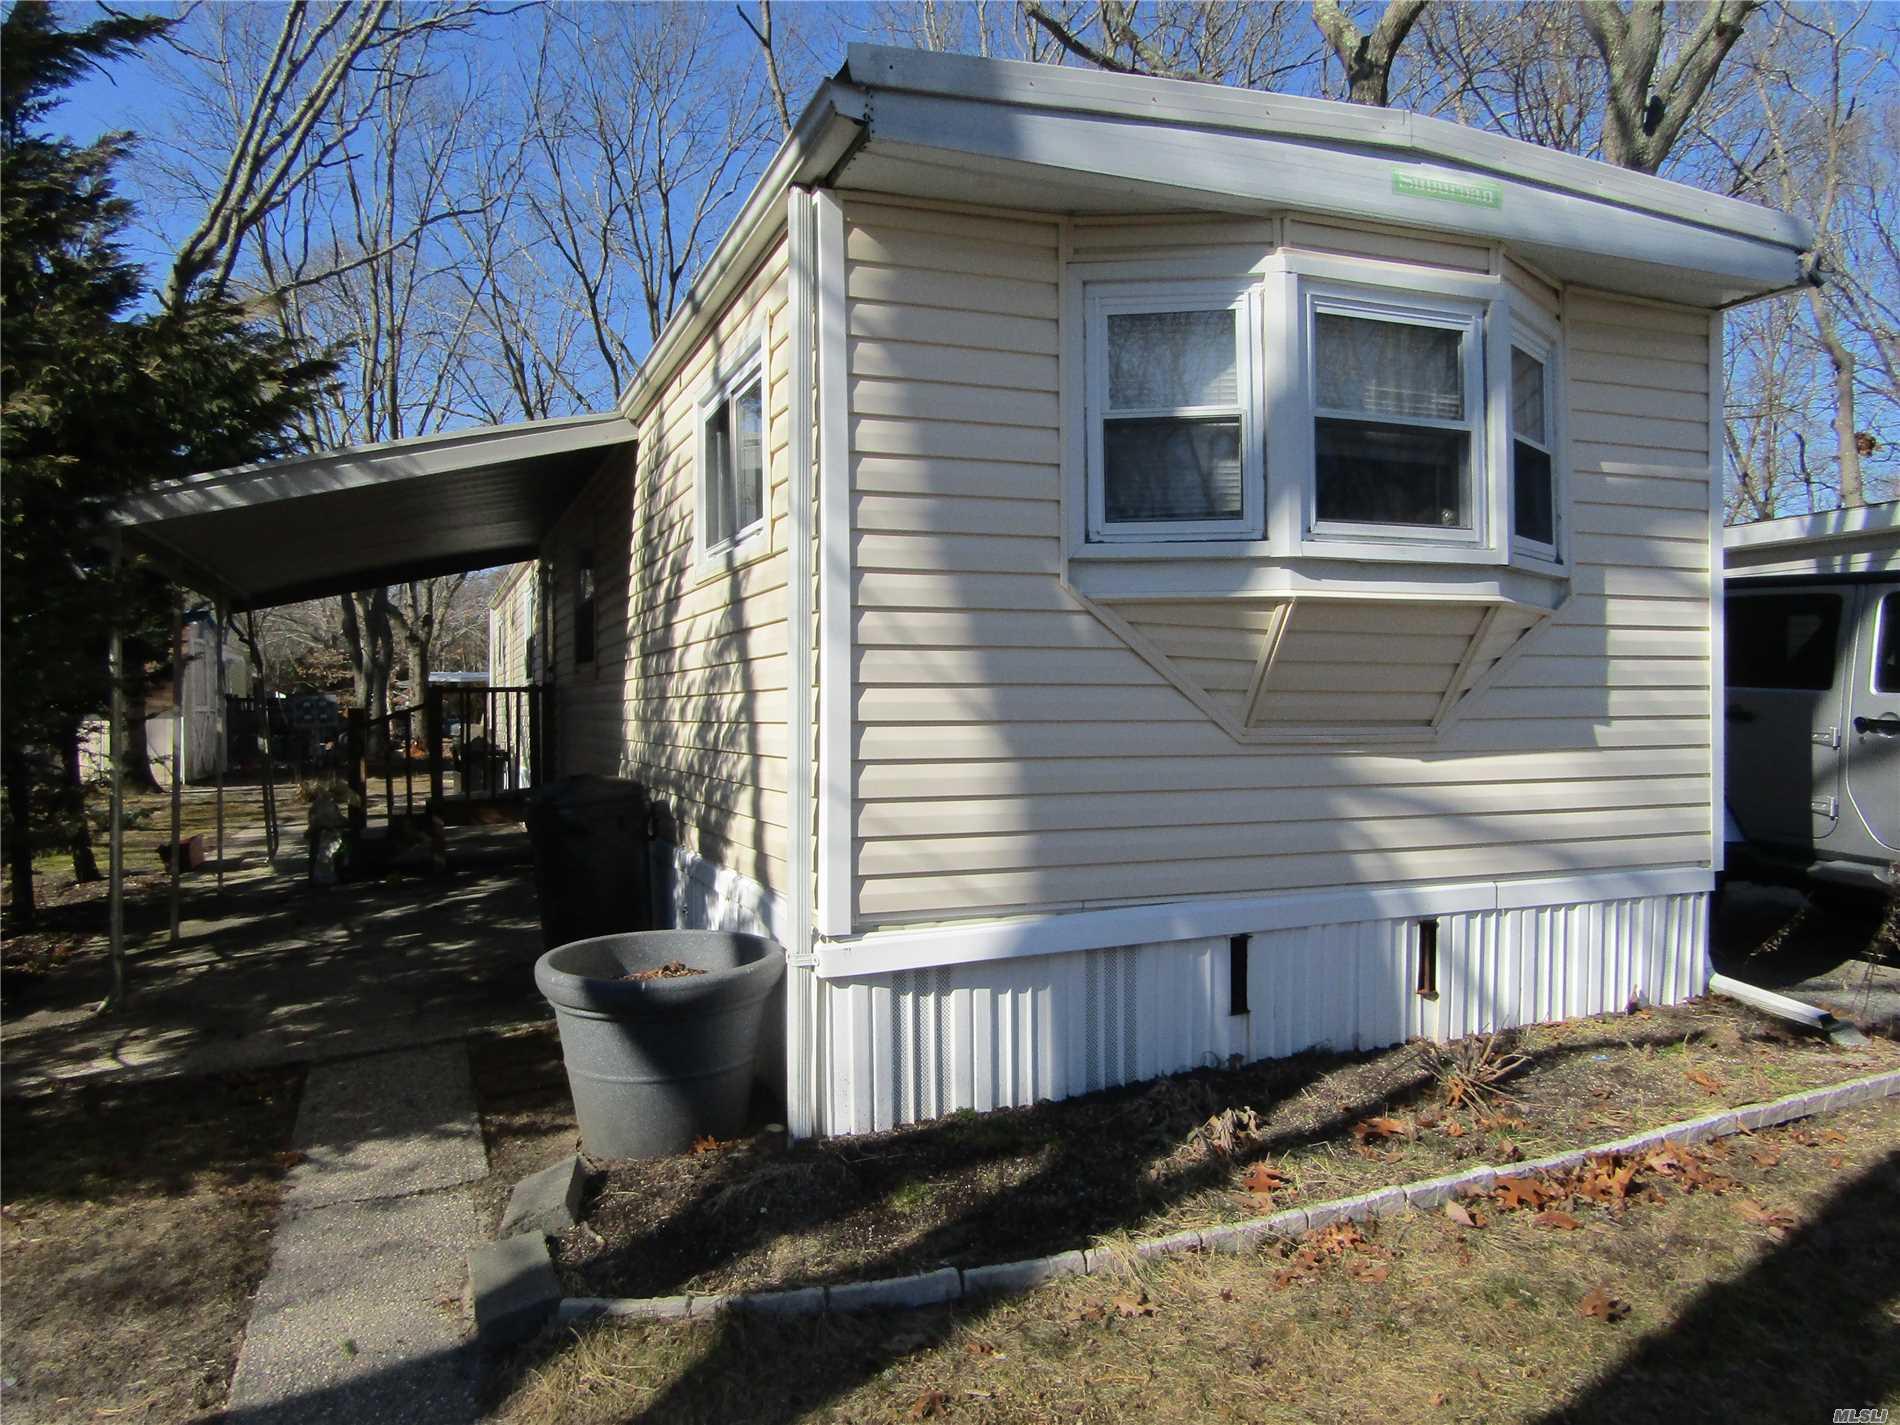 Family Park. Vinyl Sided. New 275 Gallon Oil Tank. Park. Cash Only. Land Lot Fee Is $541.00. 2 Car Driveway. 2 Br's, 2 Full Ba's, 2 Sheds.